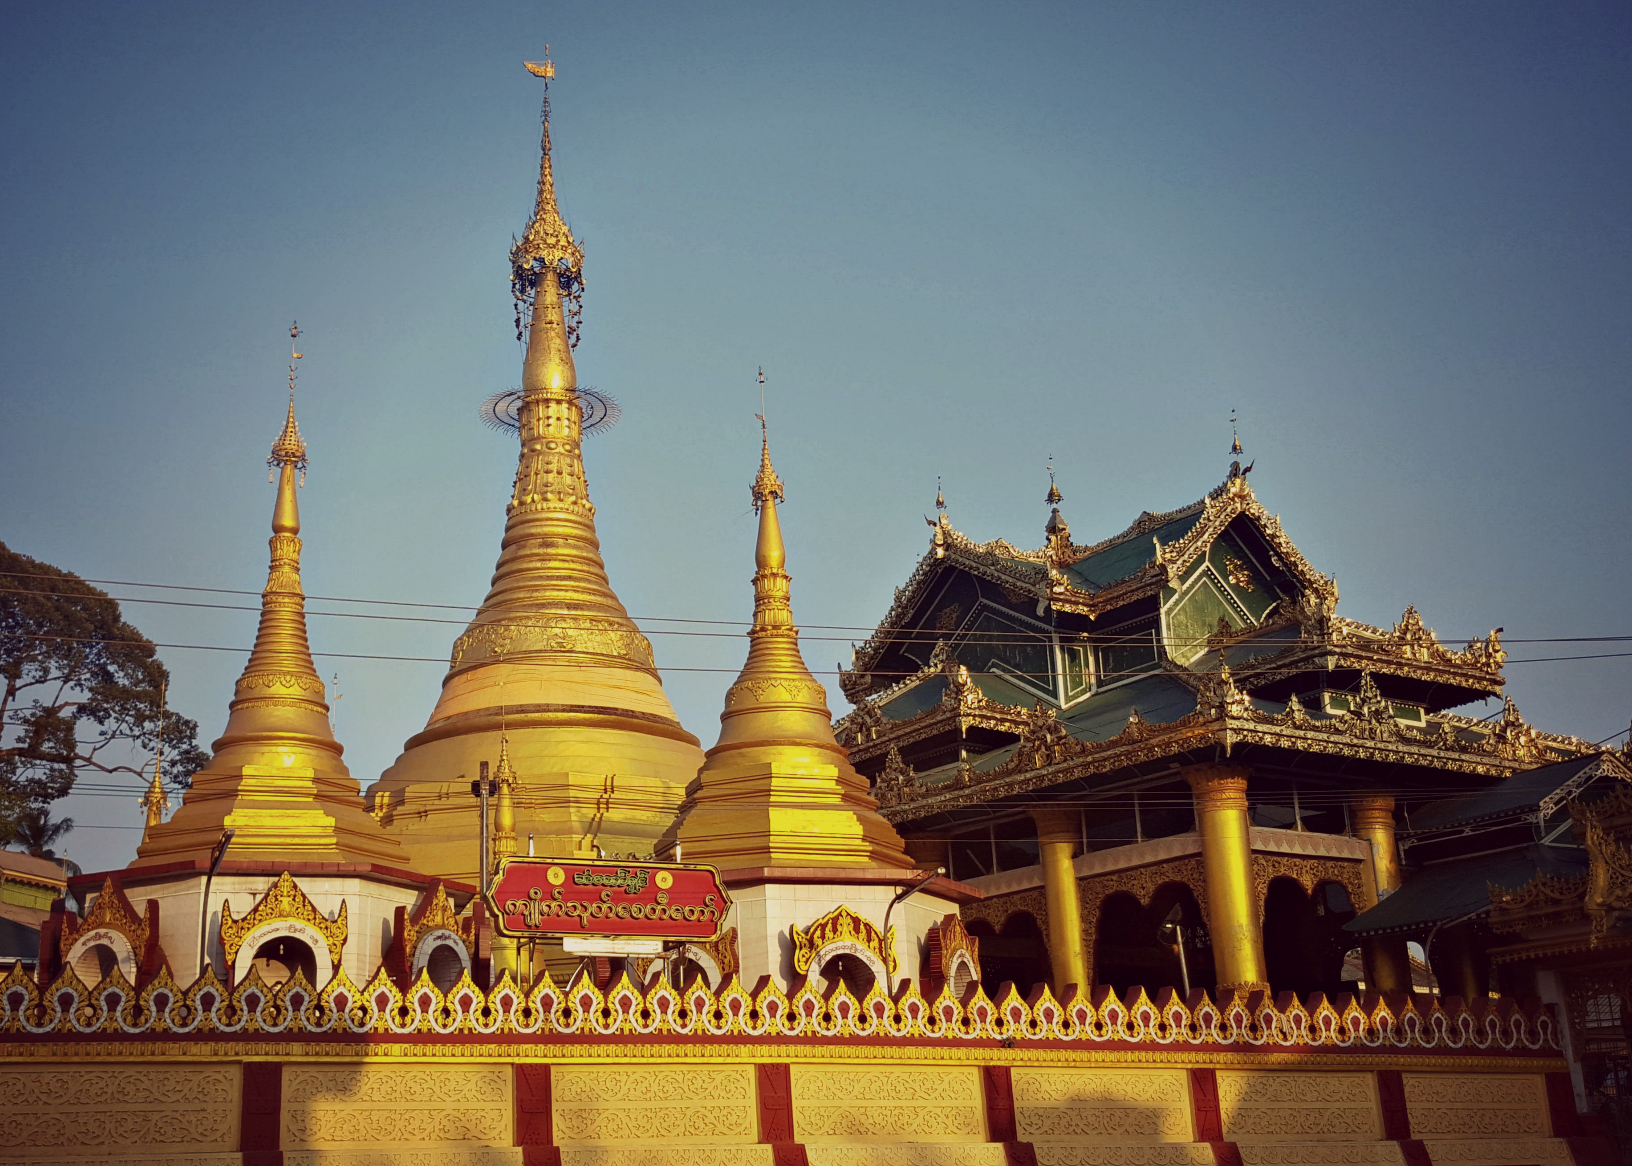 By the old Moulmein pagoda: brief stops and bouncy trains